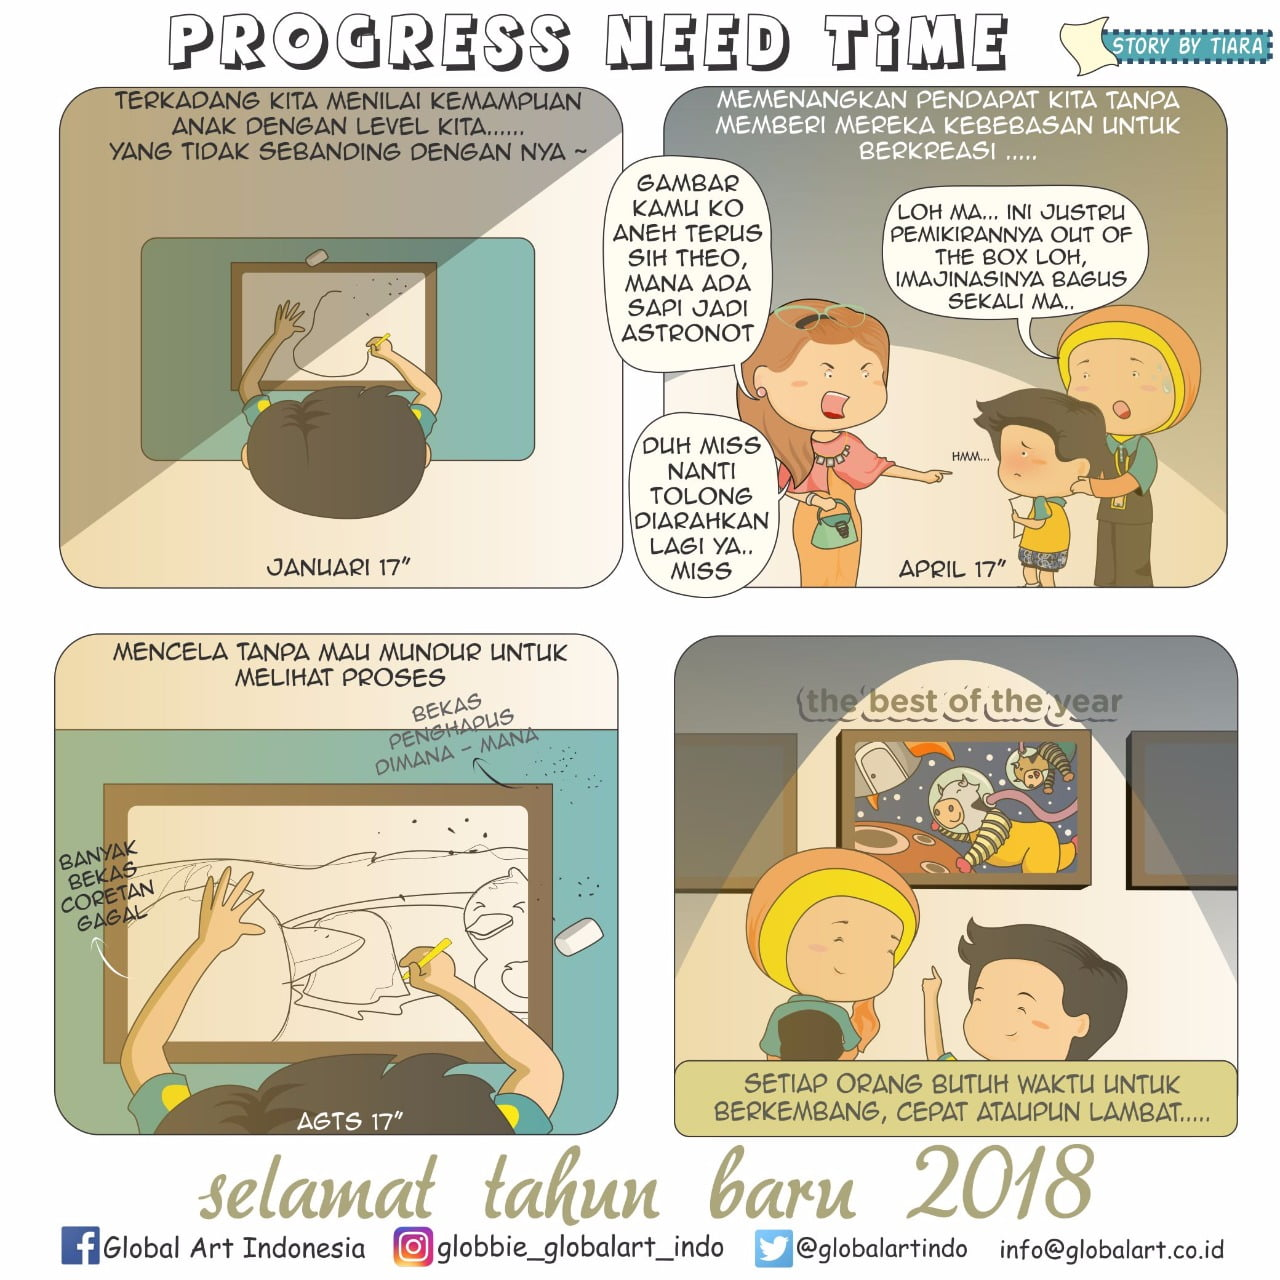 Progress Need Time by Tiara